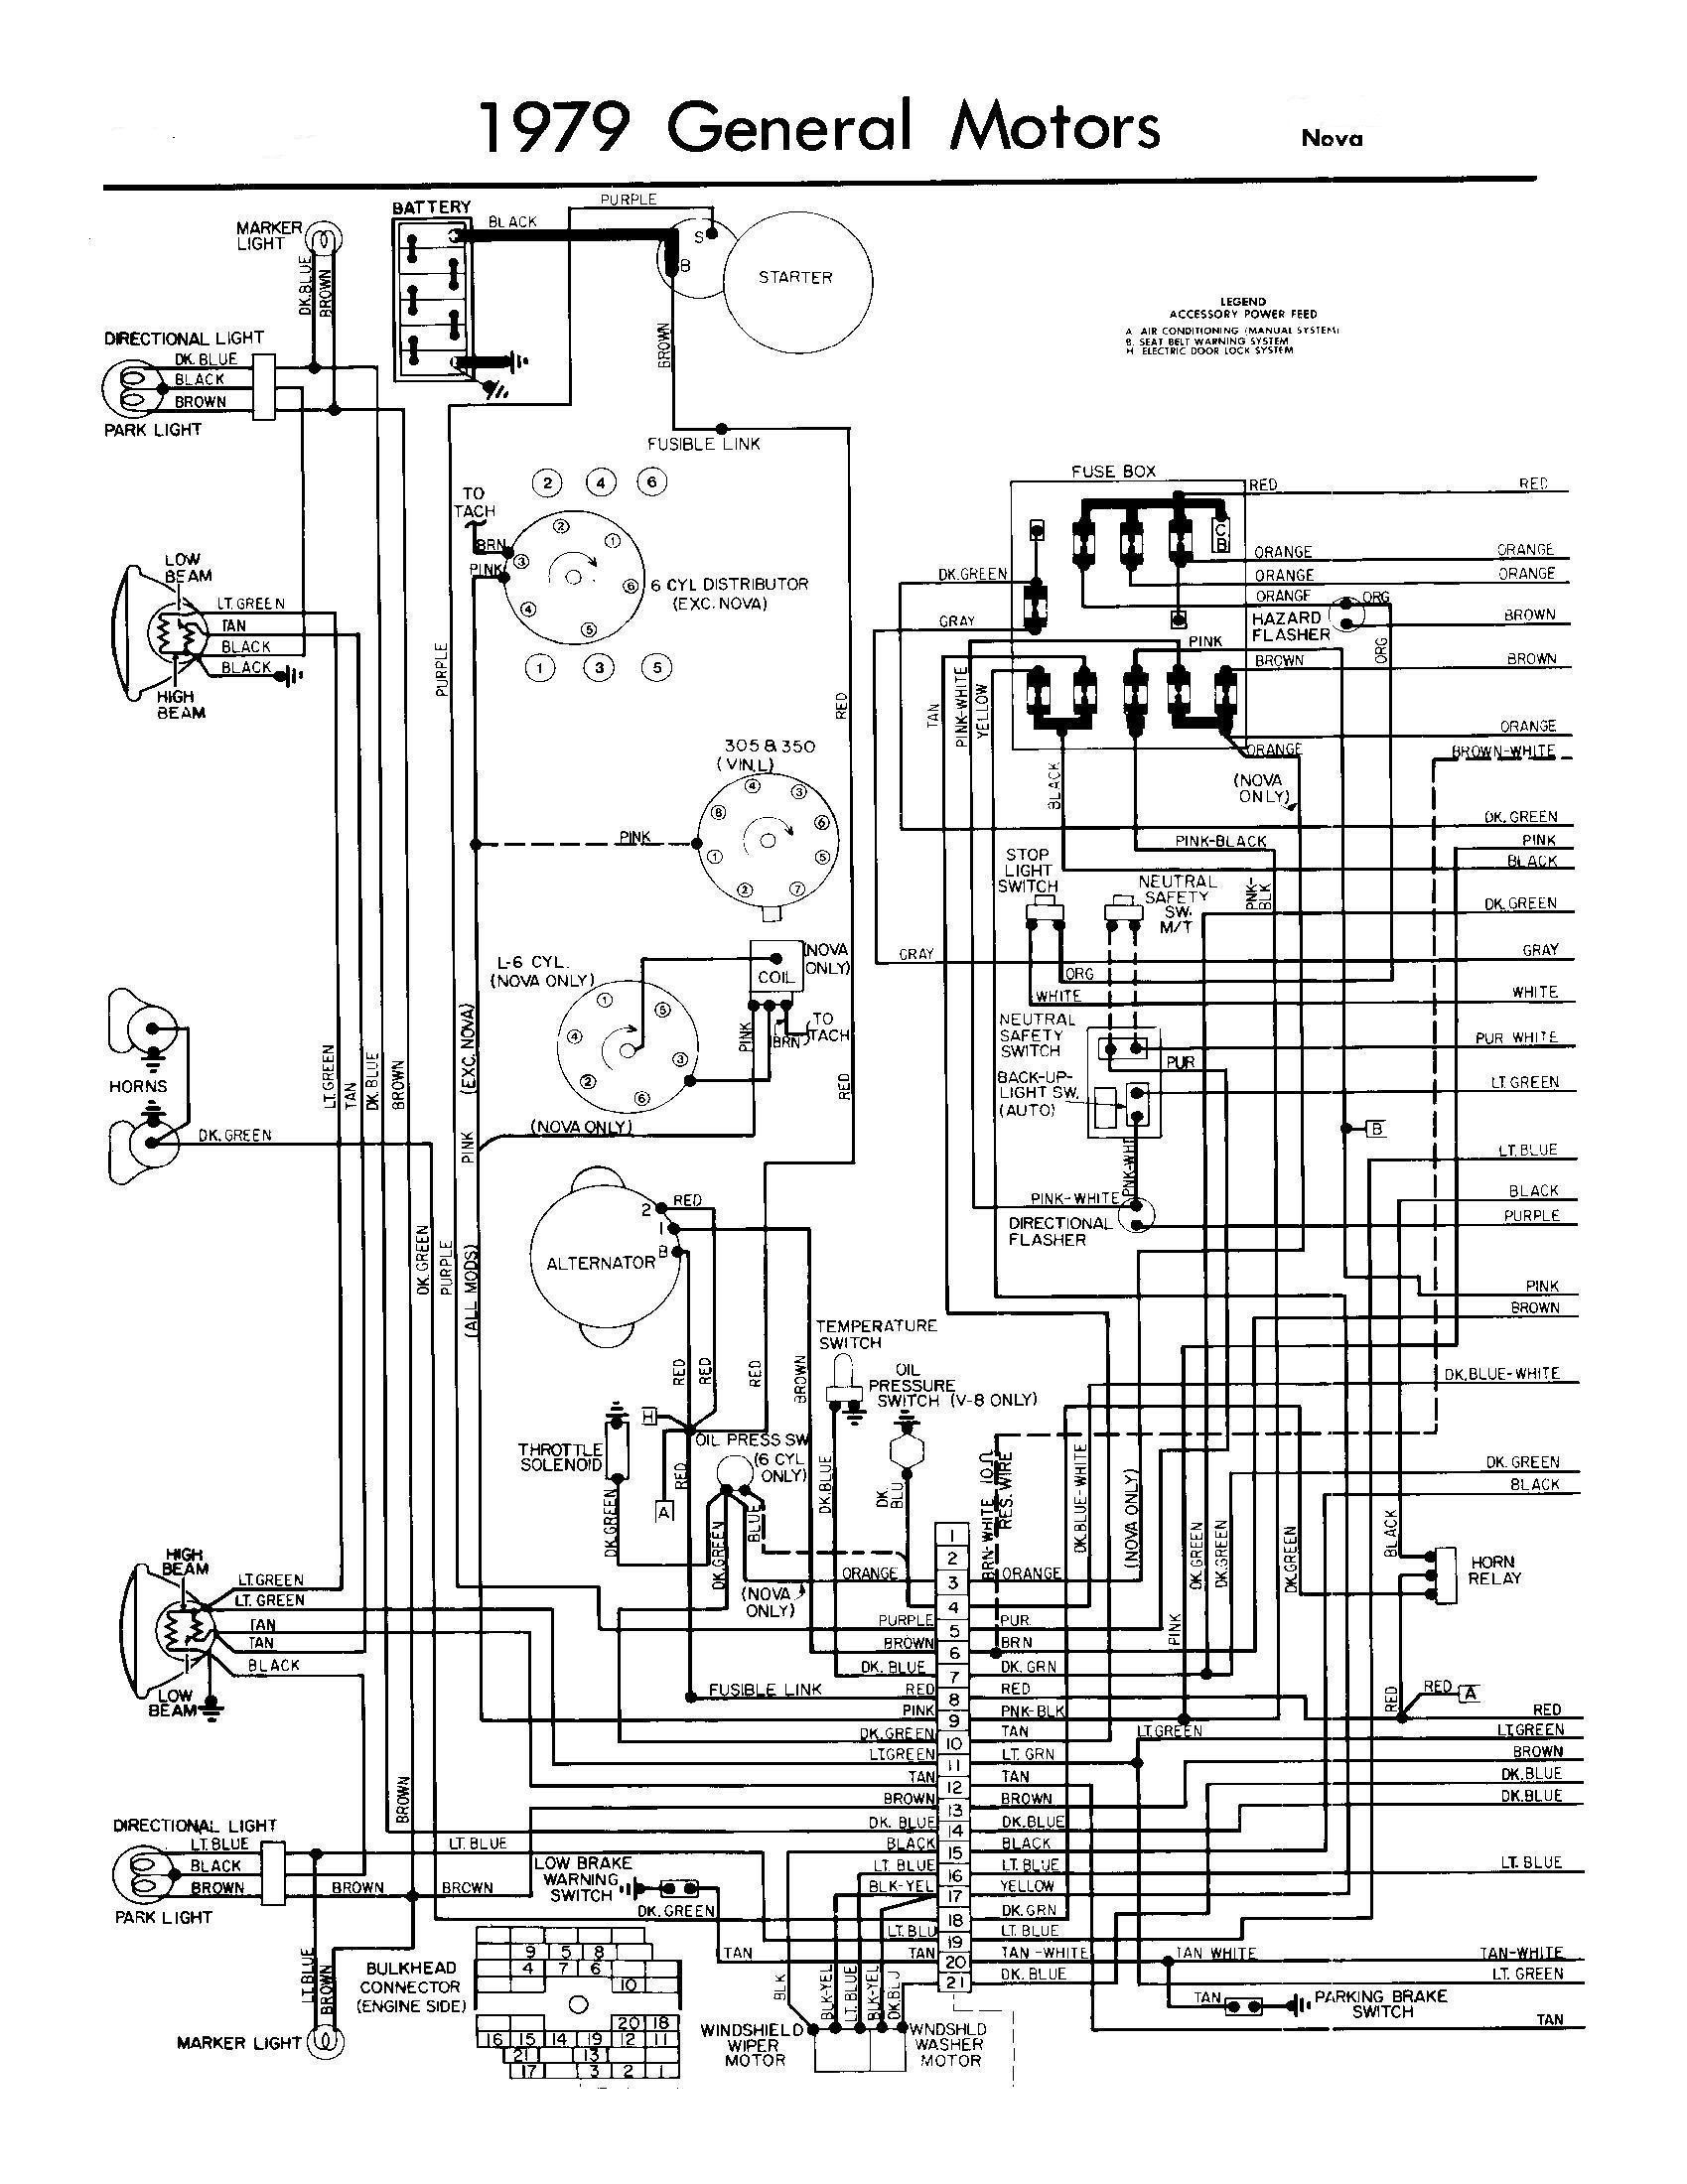 1995 Peterbilt Starter Wiring Diagram Free For You 89 F150 Relay Gmc Truck Rh 4 11 1 Carrera Rennwelt De 1989